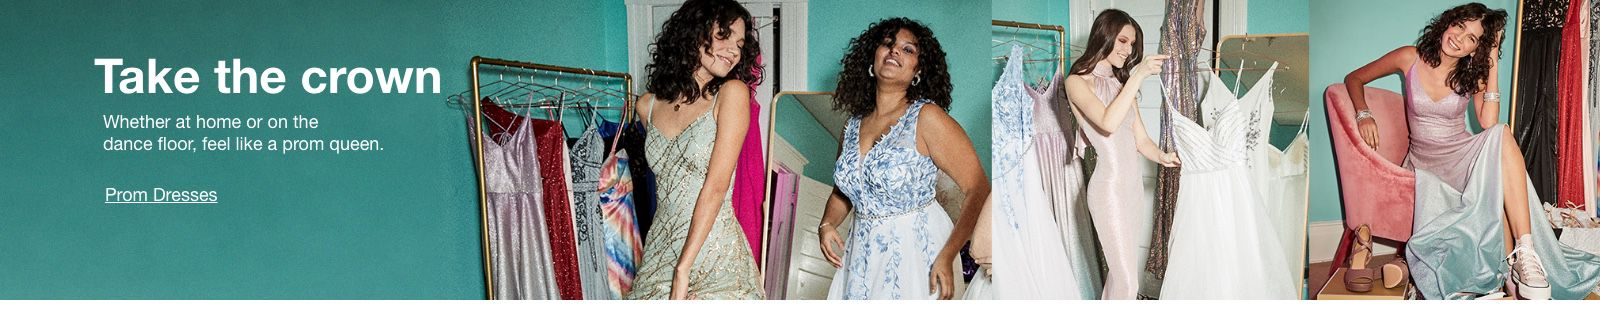 Take the crown, Whether at home or on the dance floor, feel like a prom queen, Prom Dresses